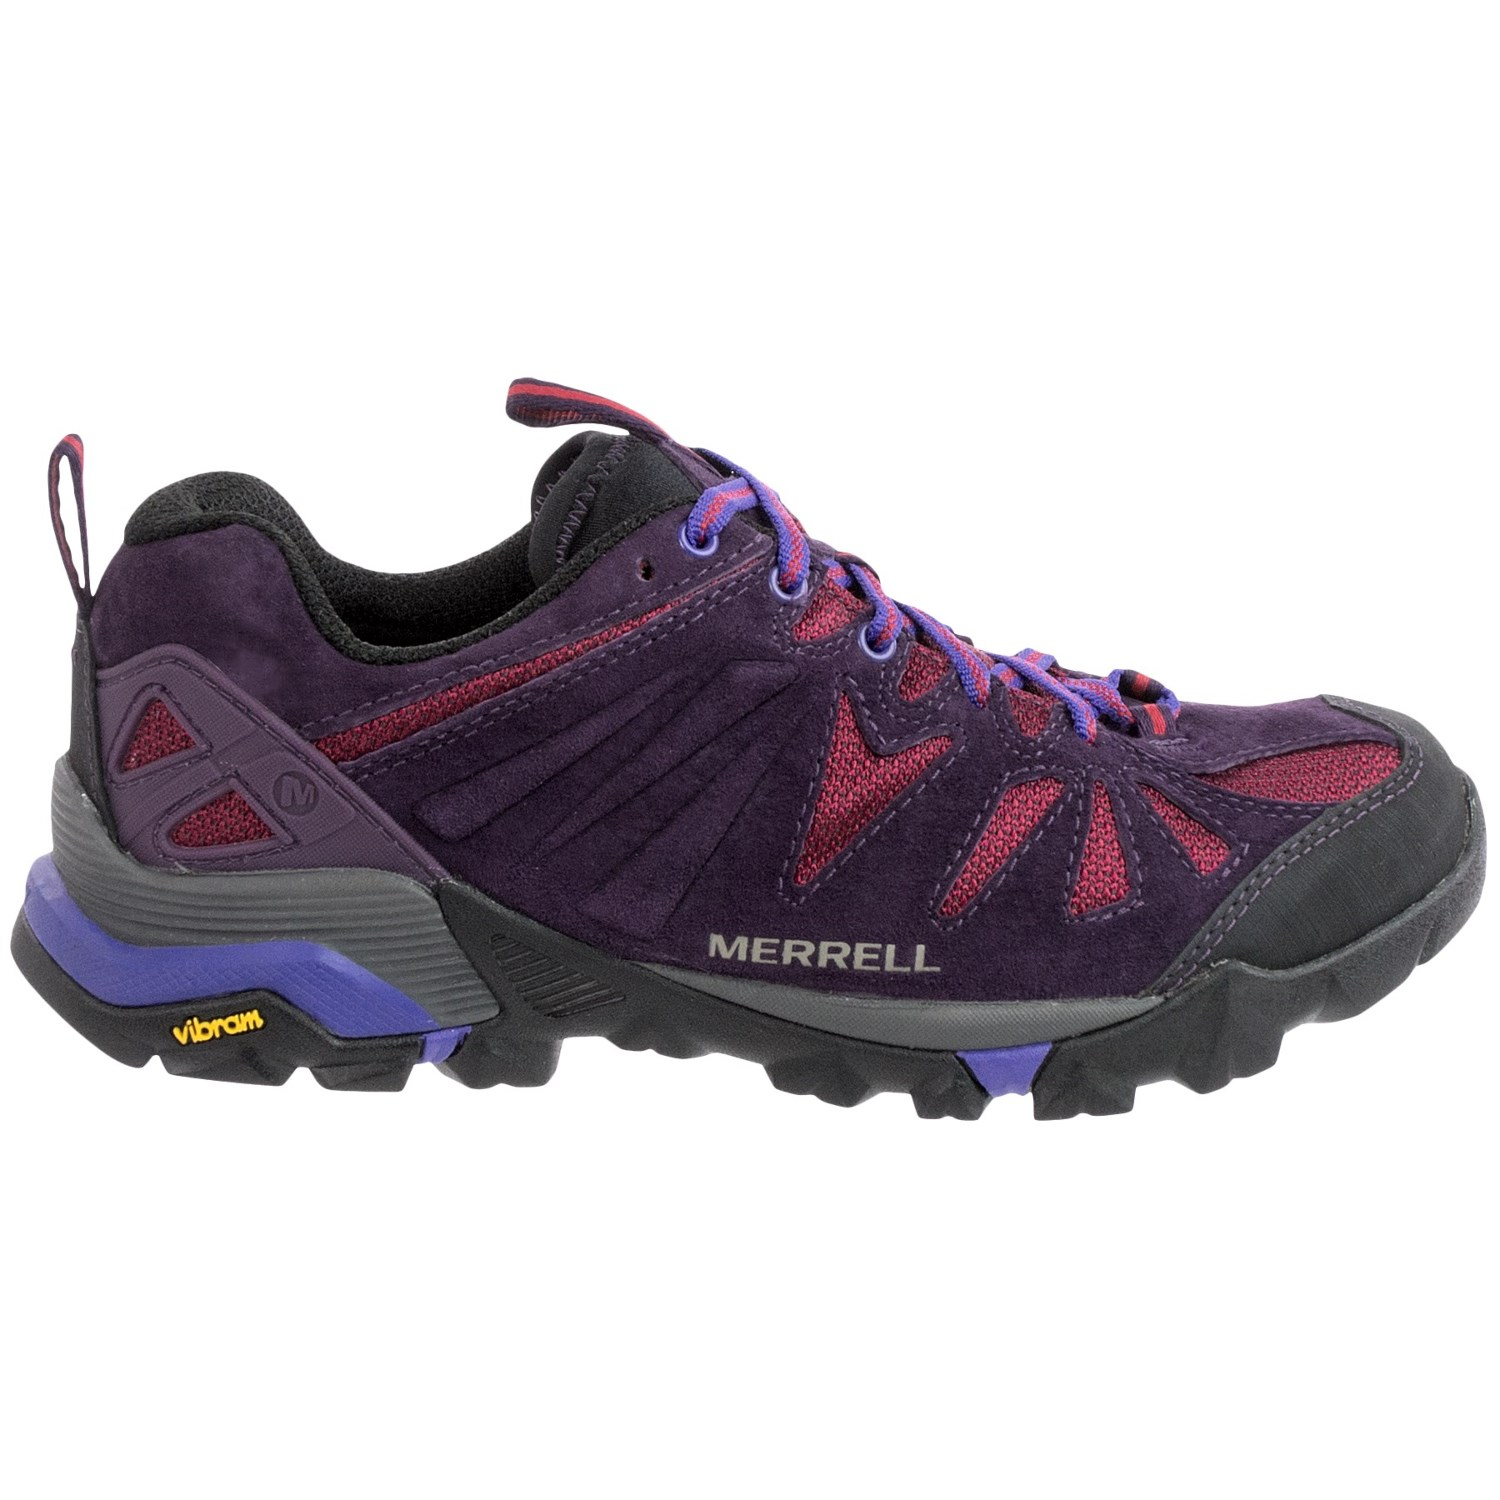 Merrell Capra Trail Shoes For Women Save 46